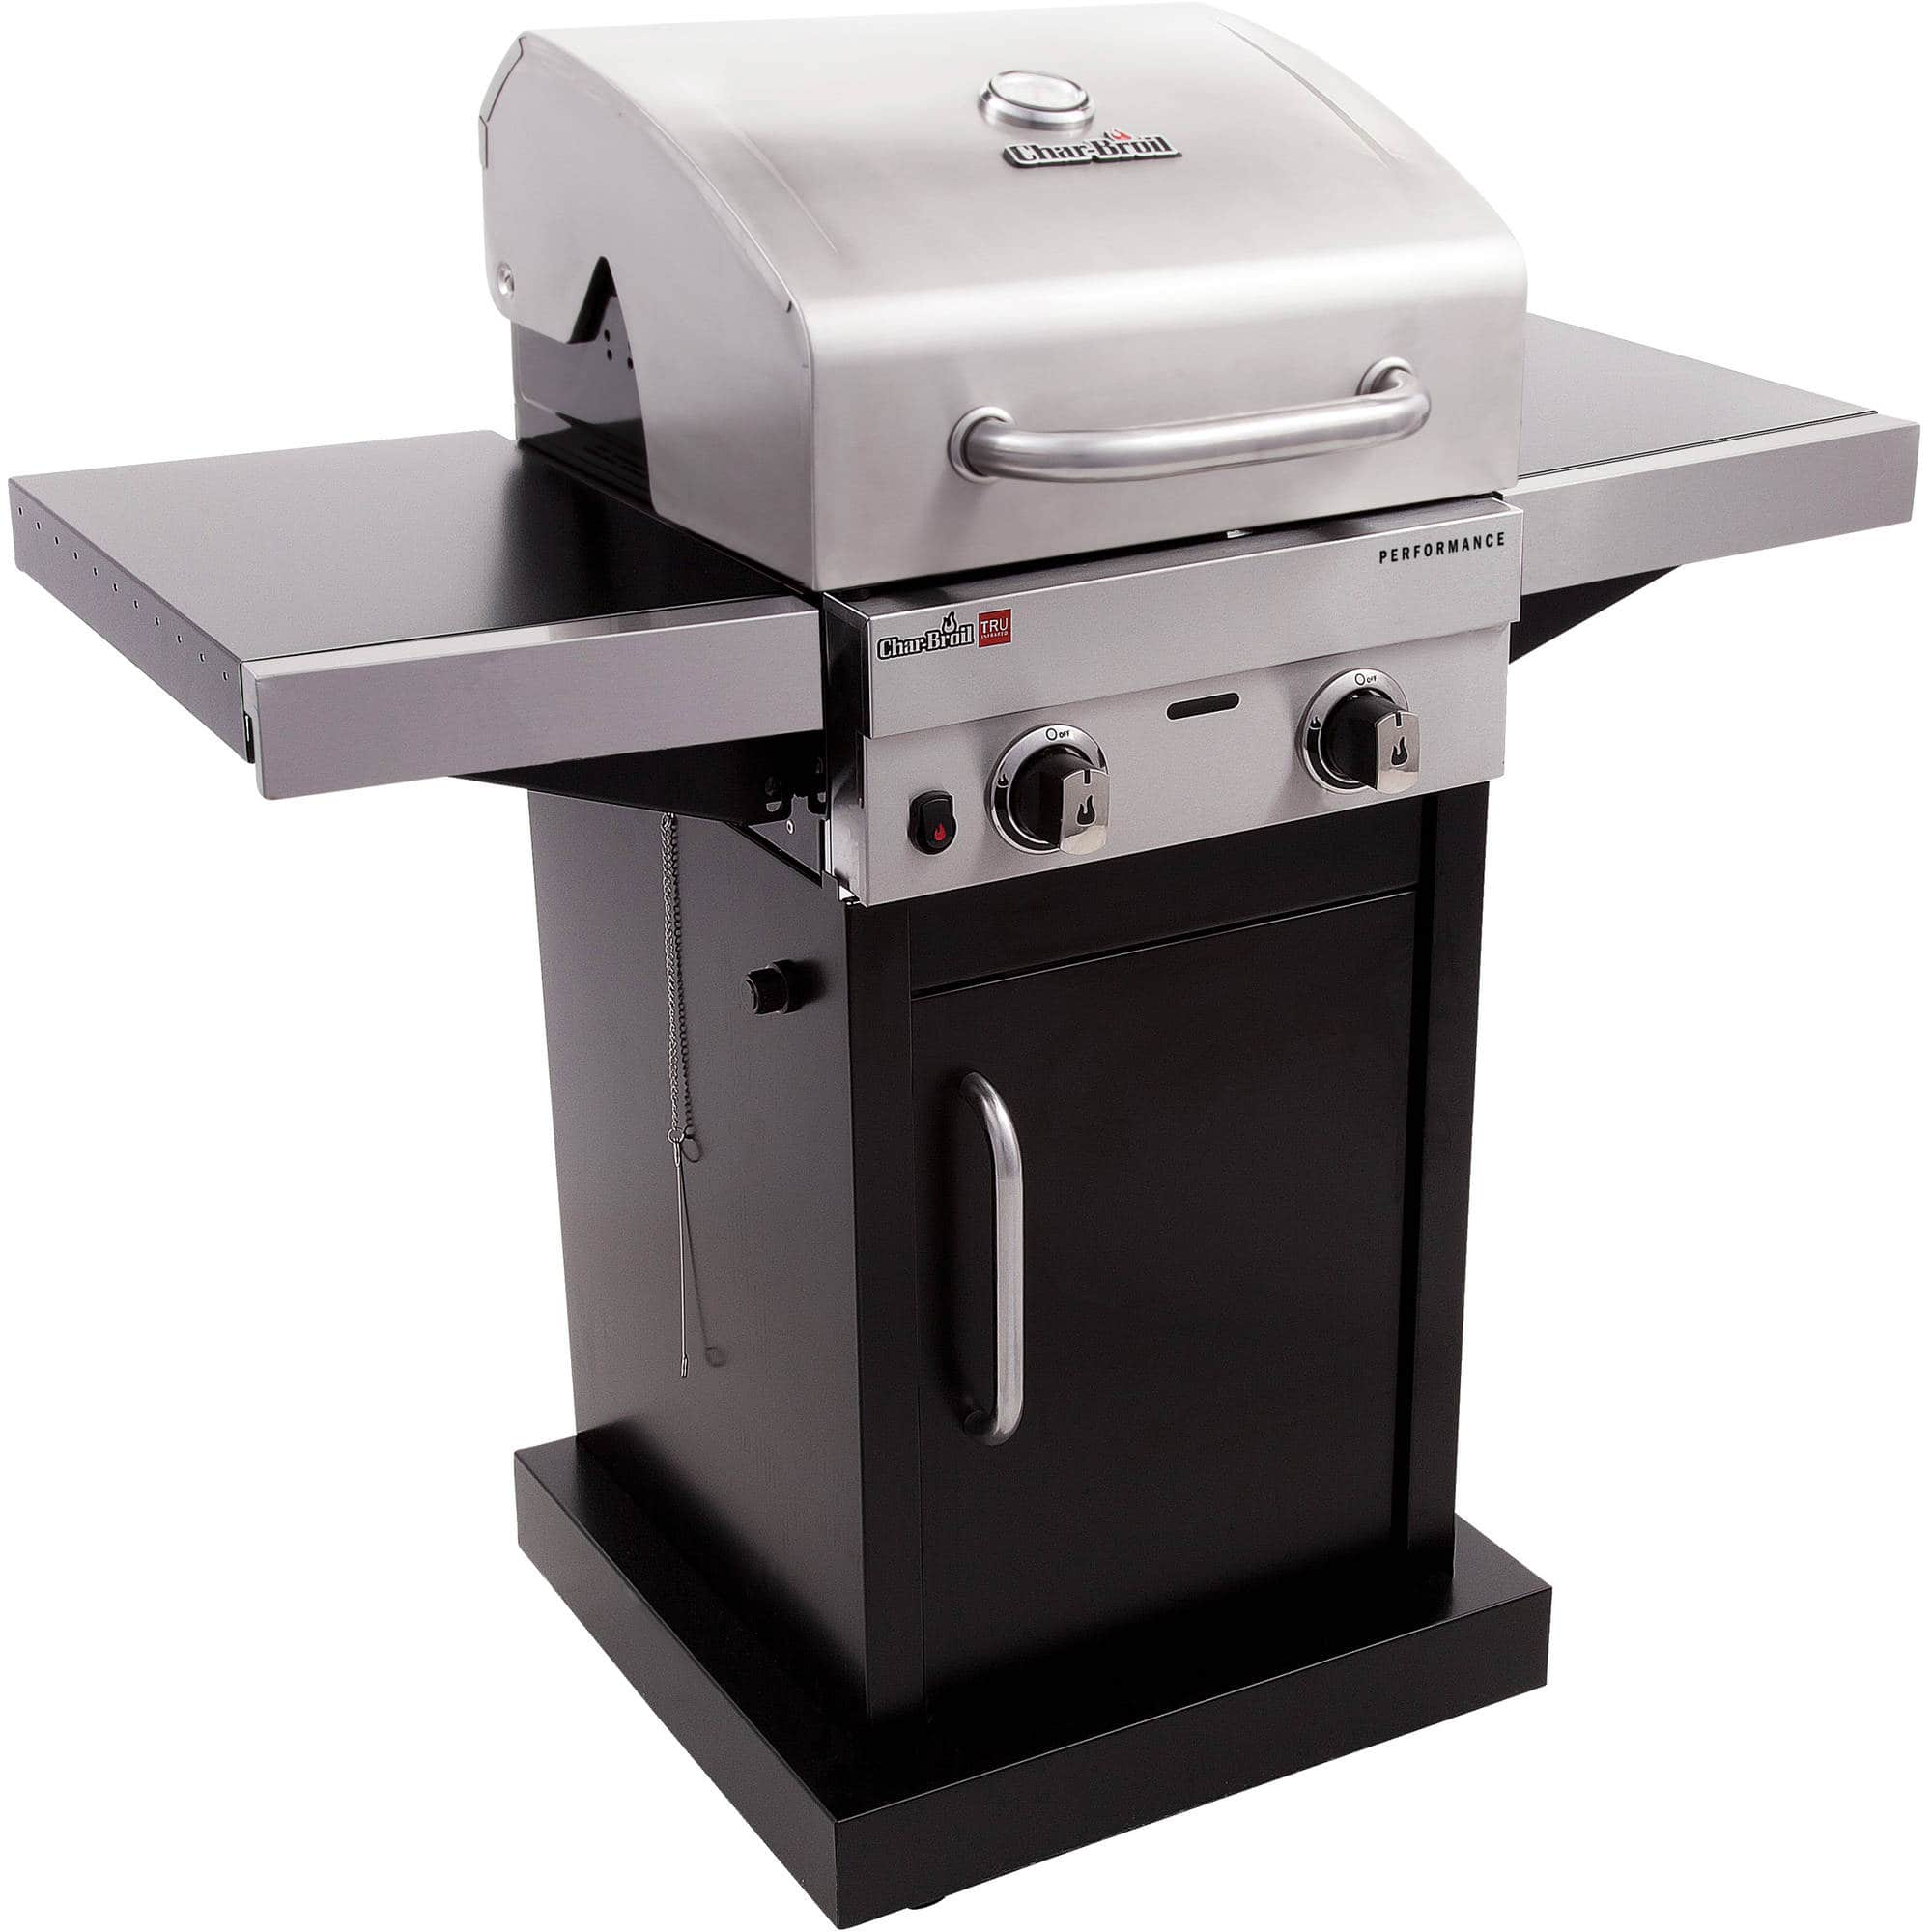 WM B&M Char Broil TRU Infrared and gas grill reg $229 clearanced at